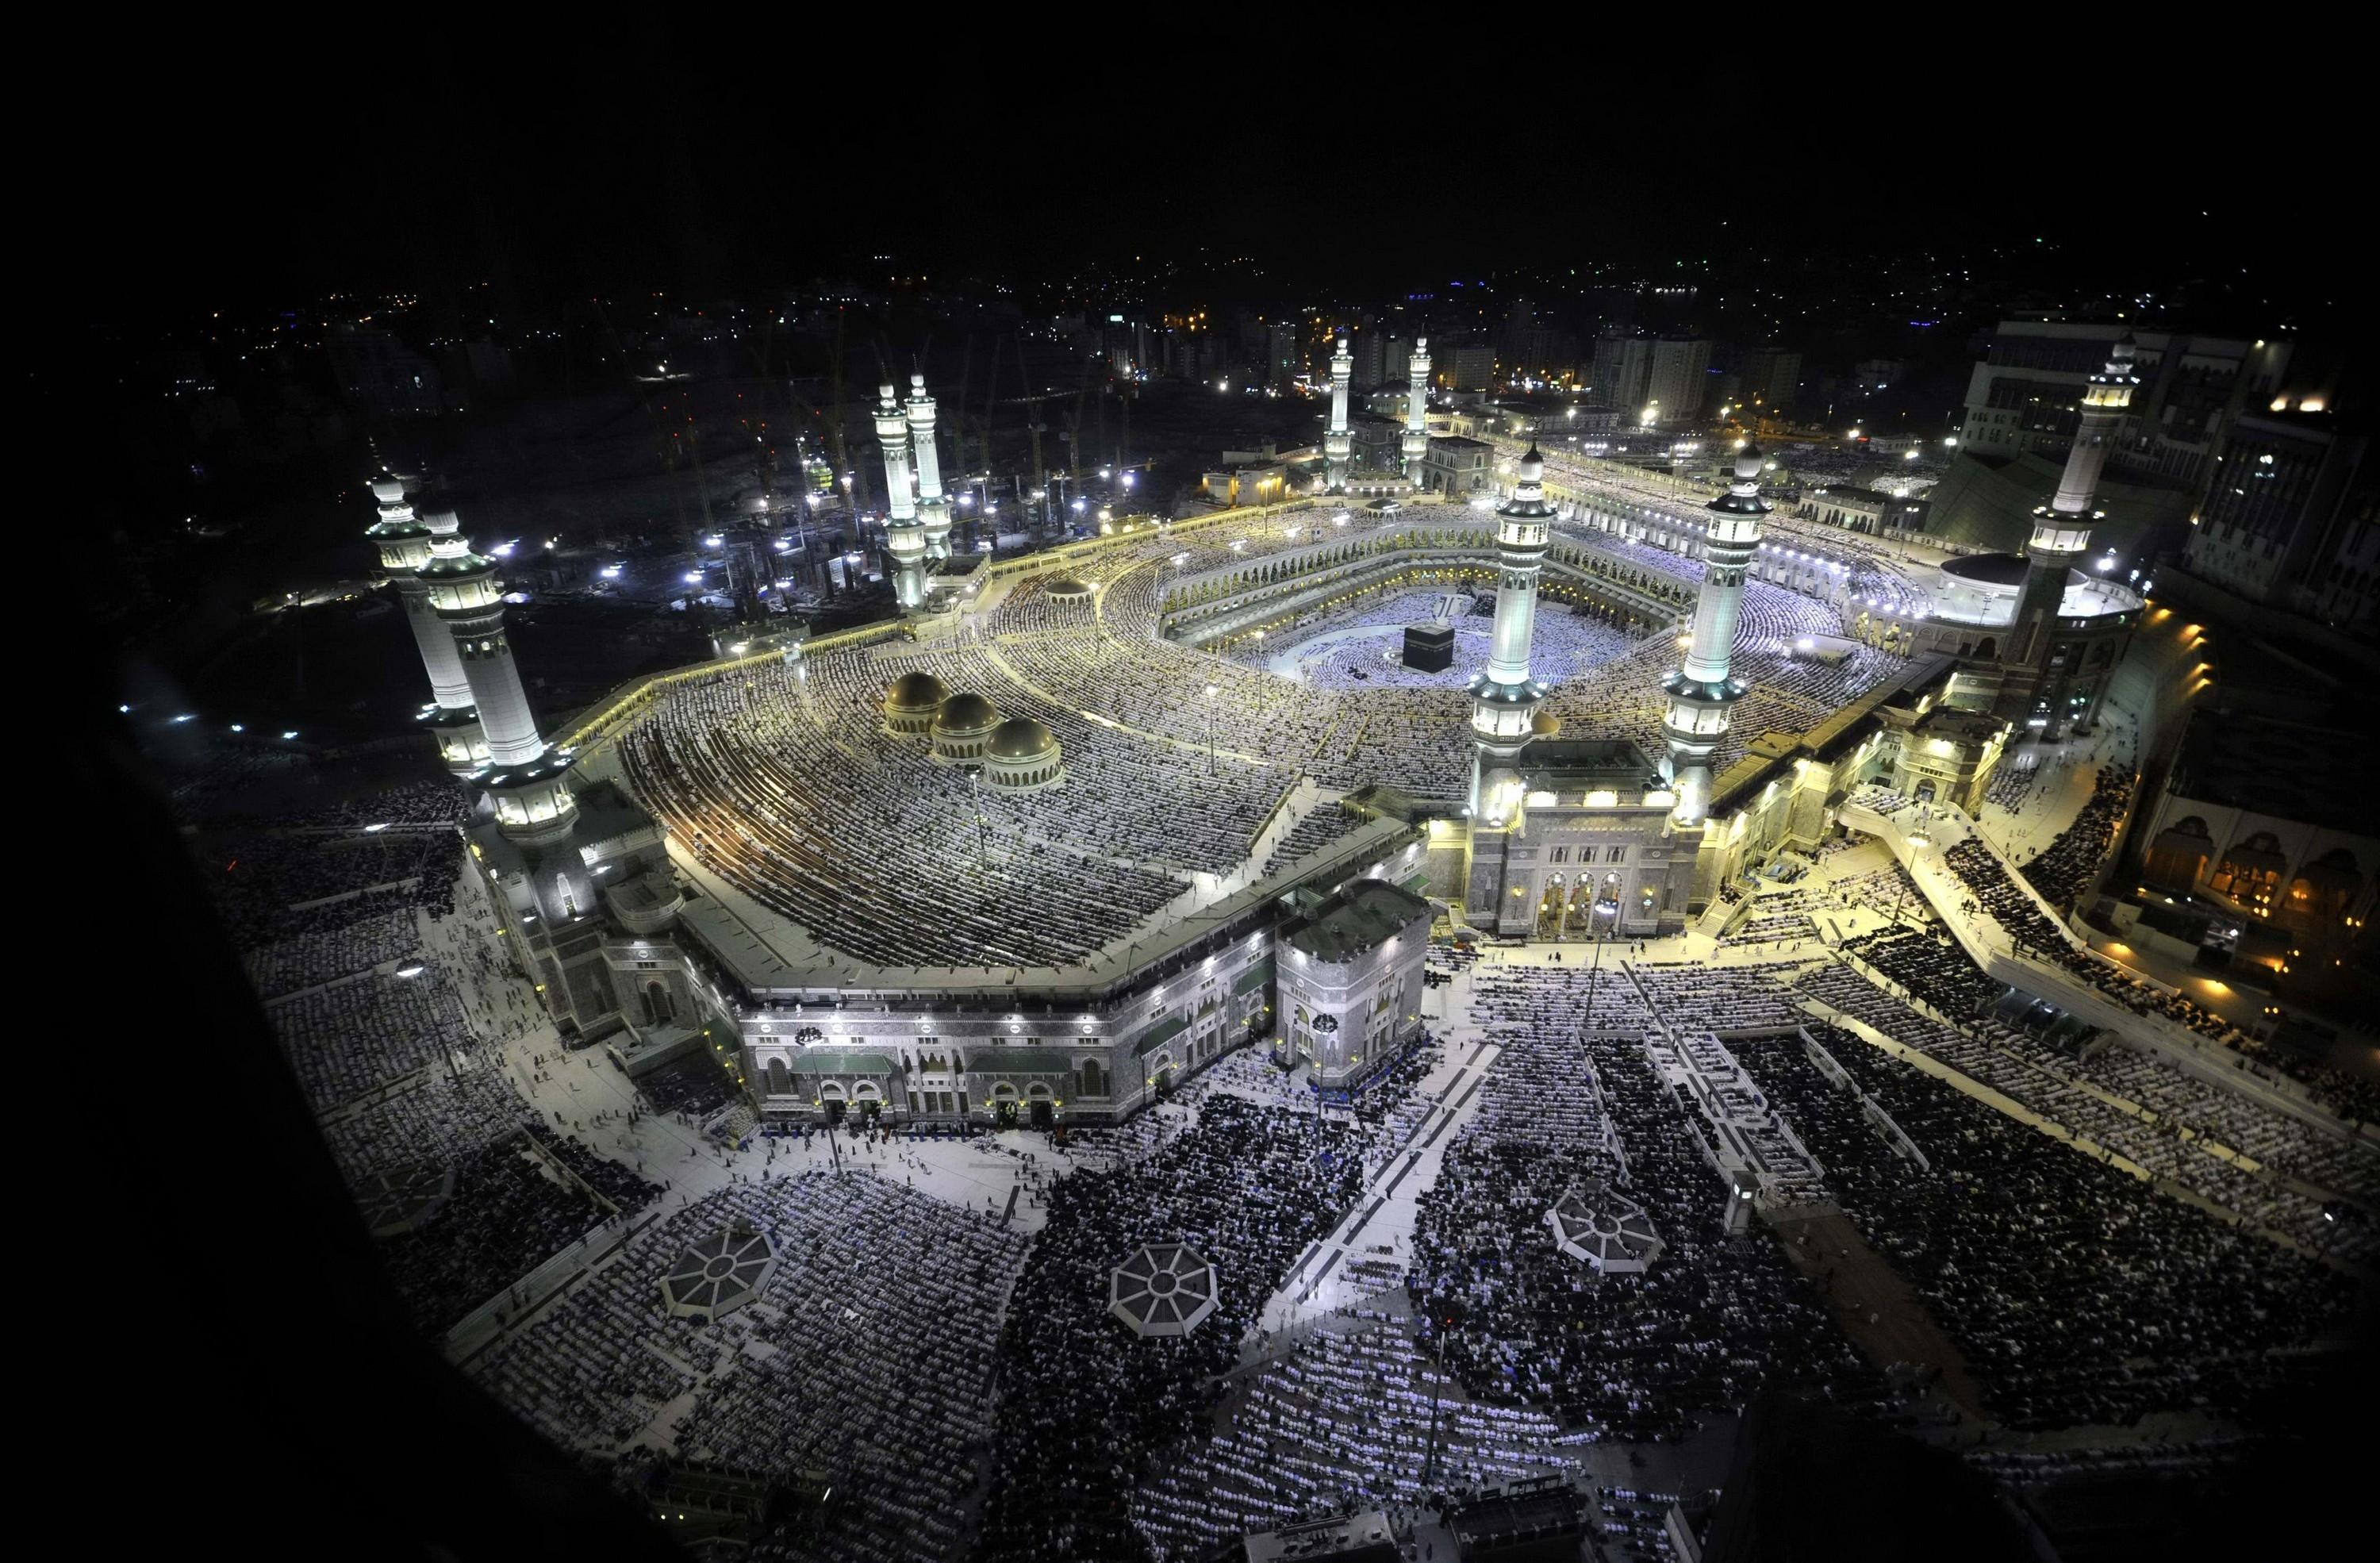 Kaaba Mecca Live Wallpaper islamic background for Android   APK 3000x1970